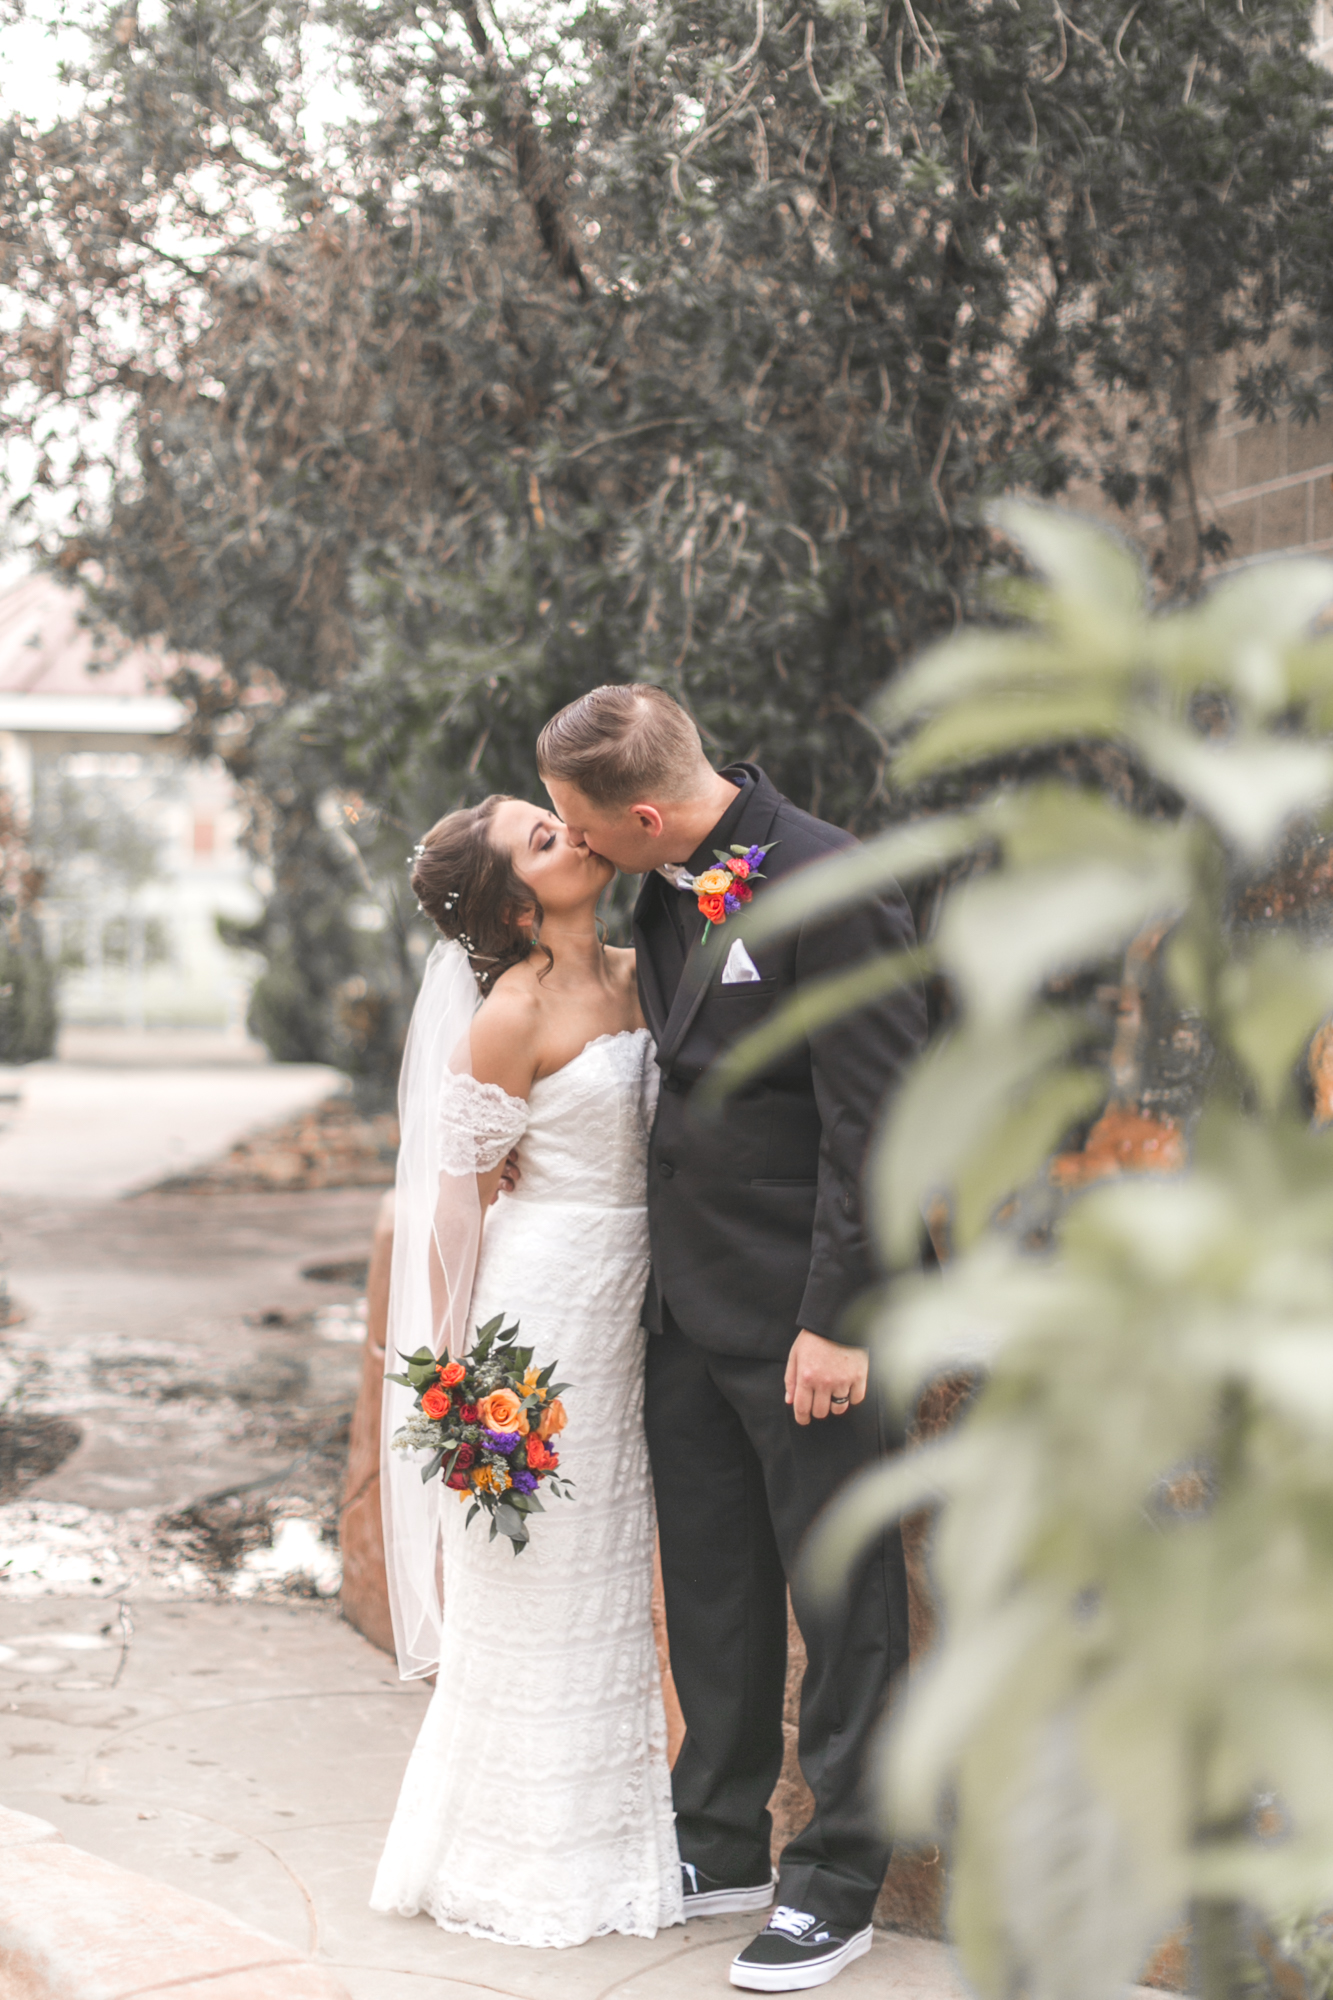 Seymour-Matte Wedding-8.jpg